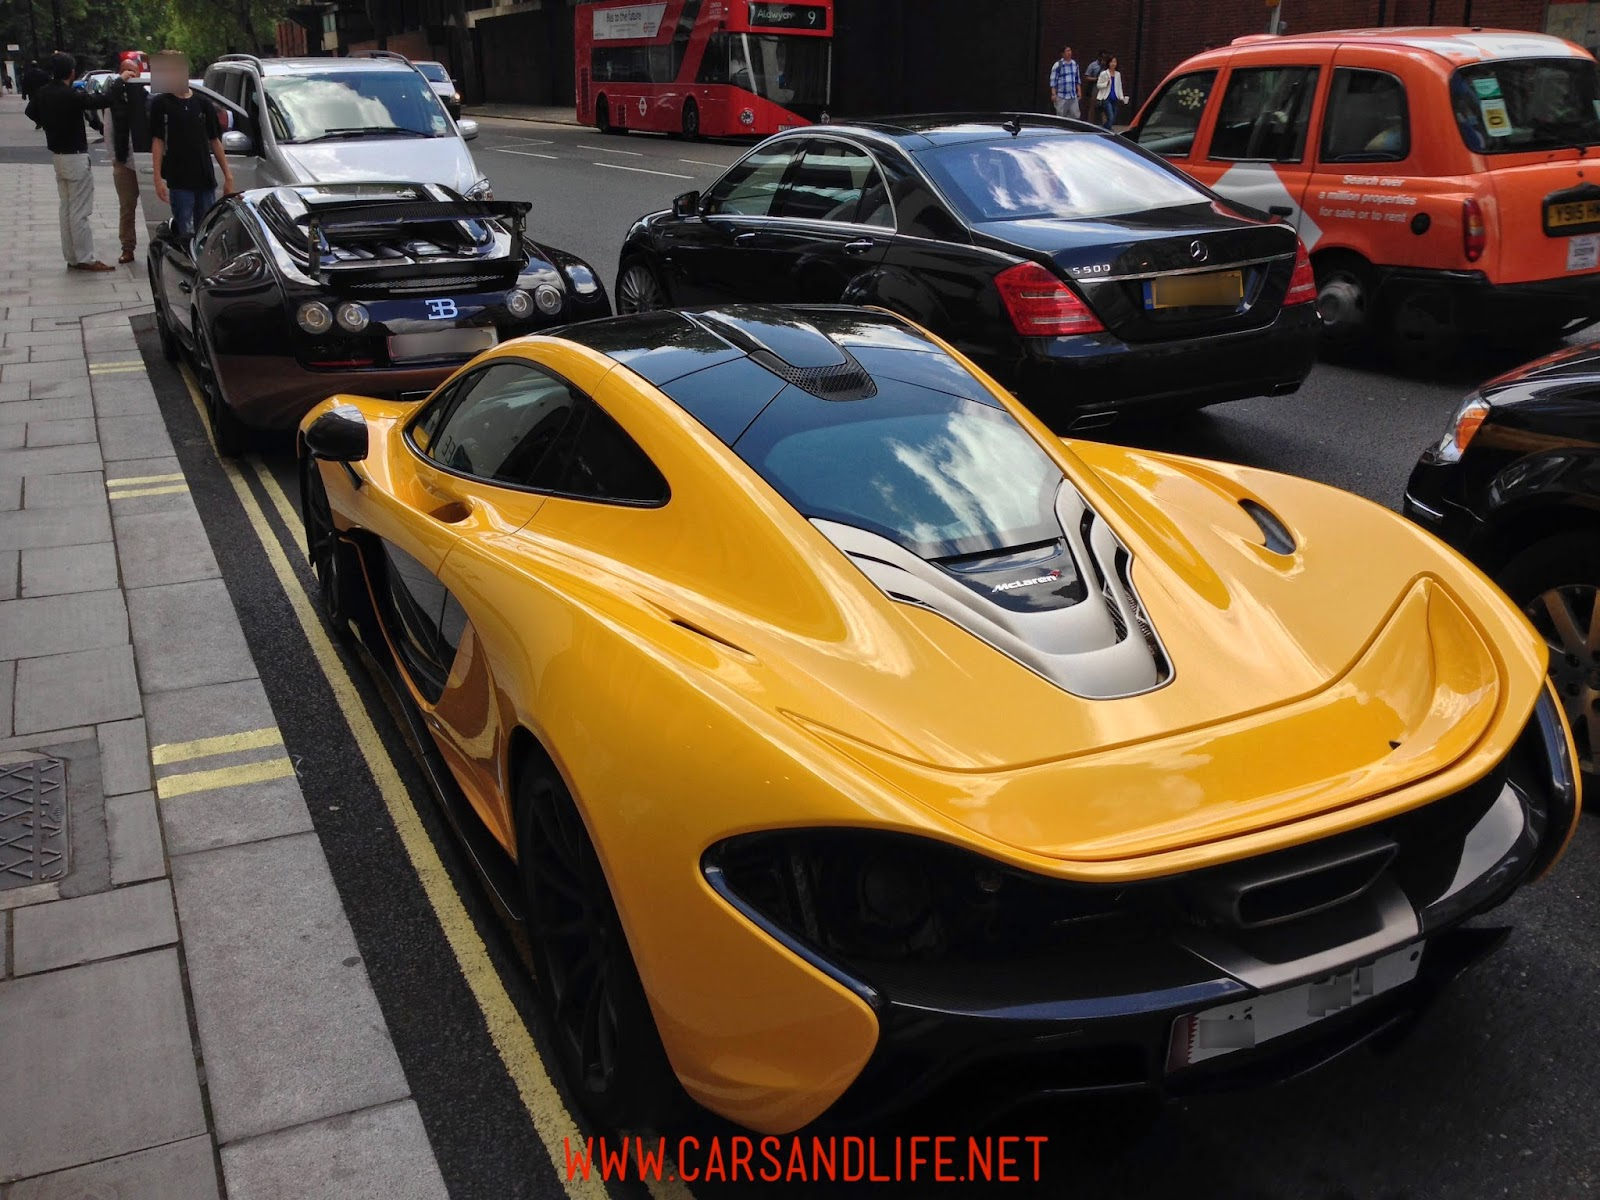 Bugatti Veyron vs. McLaren P1 in Knightsbridge (SW1) London